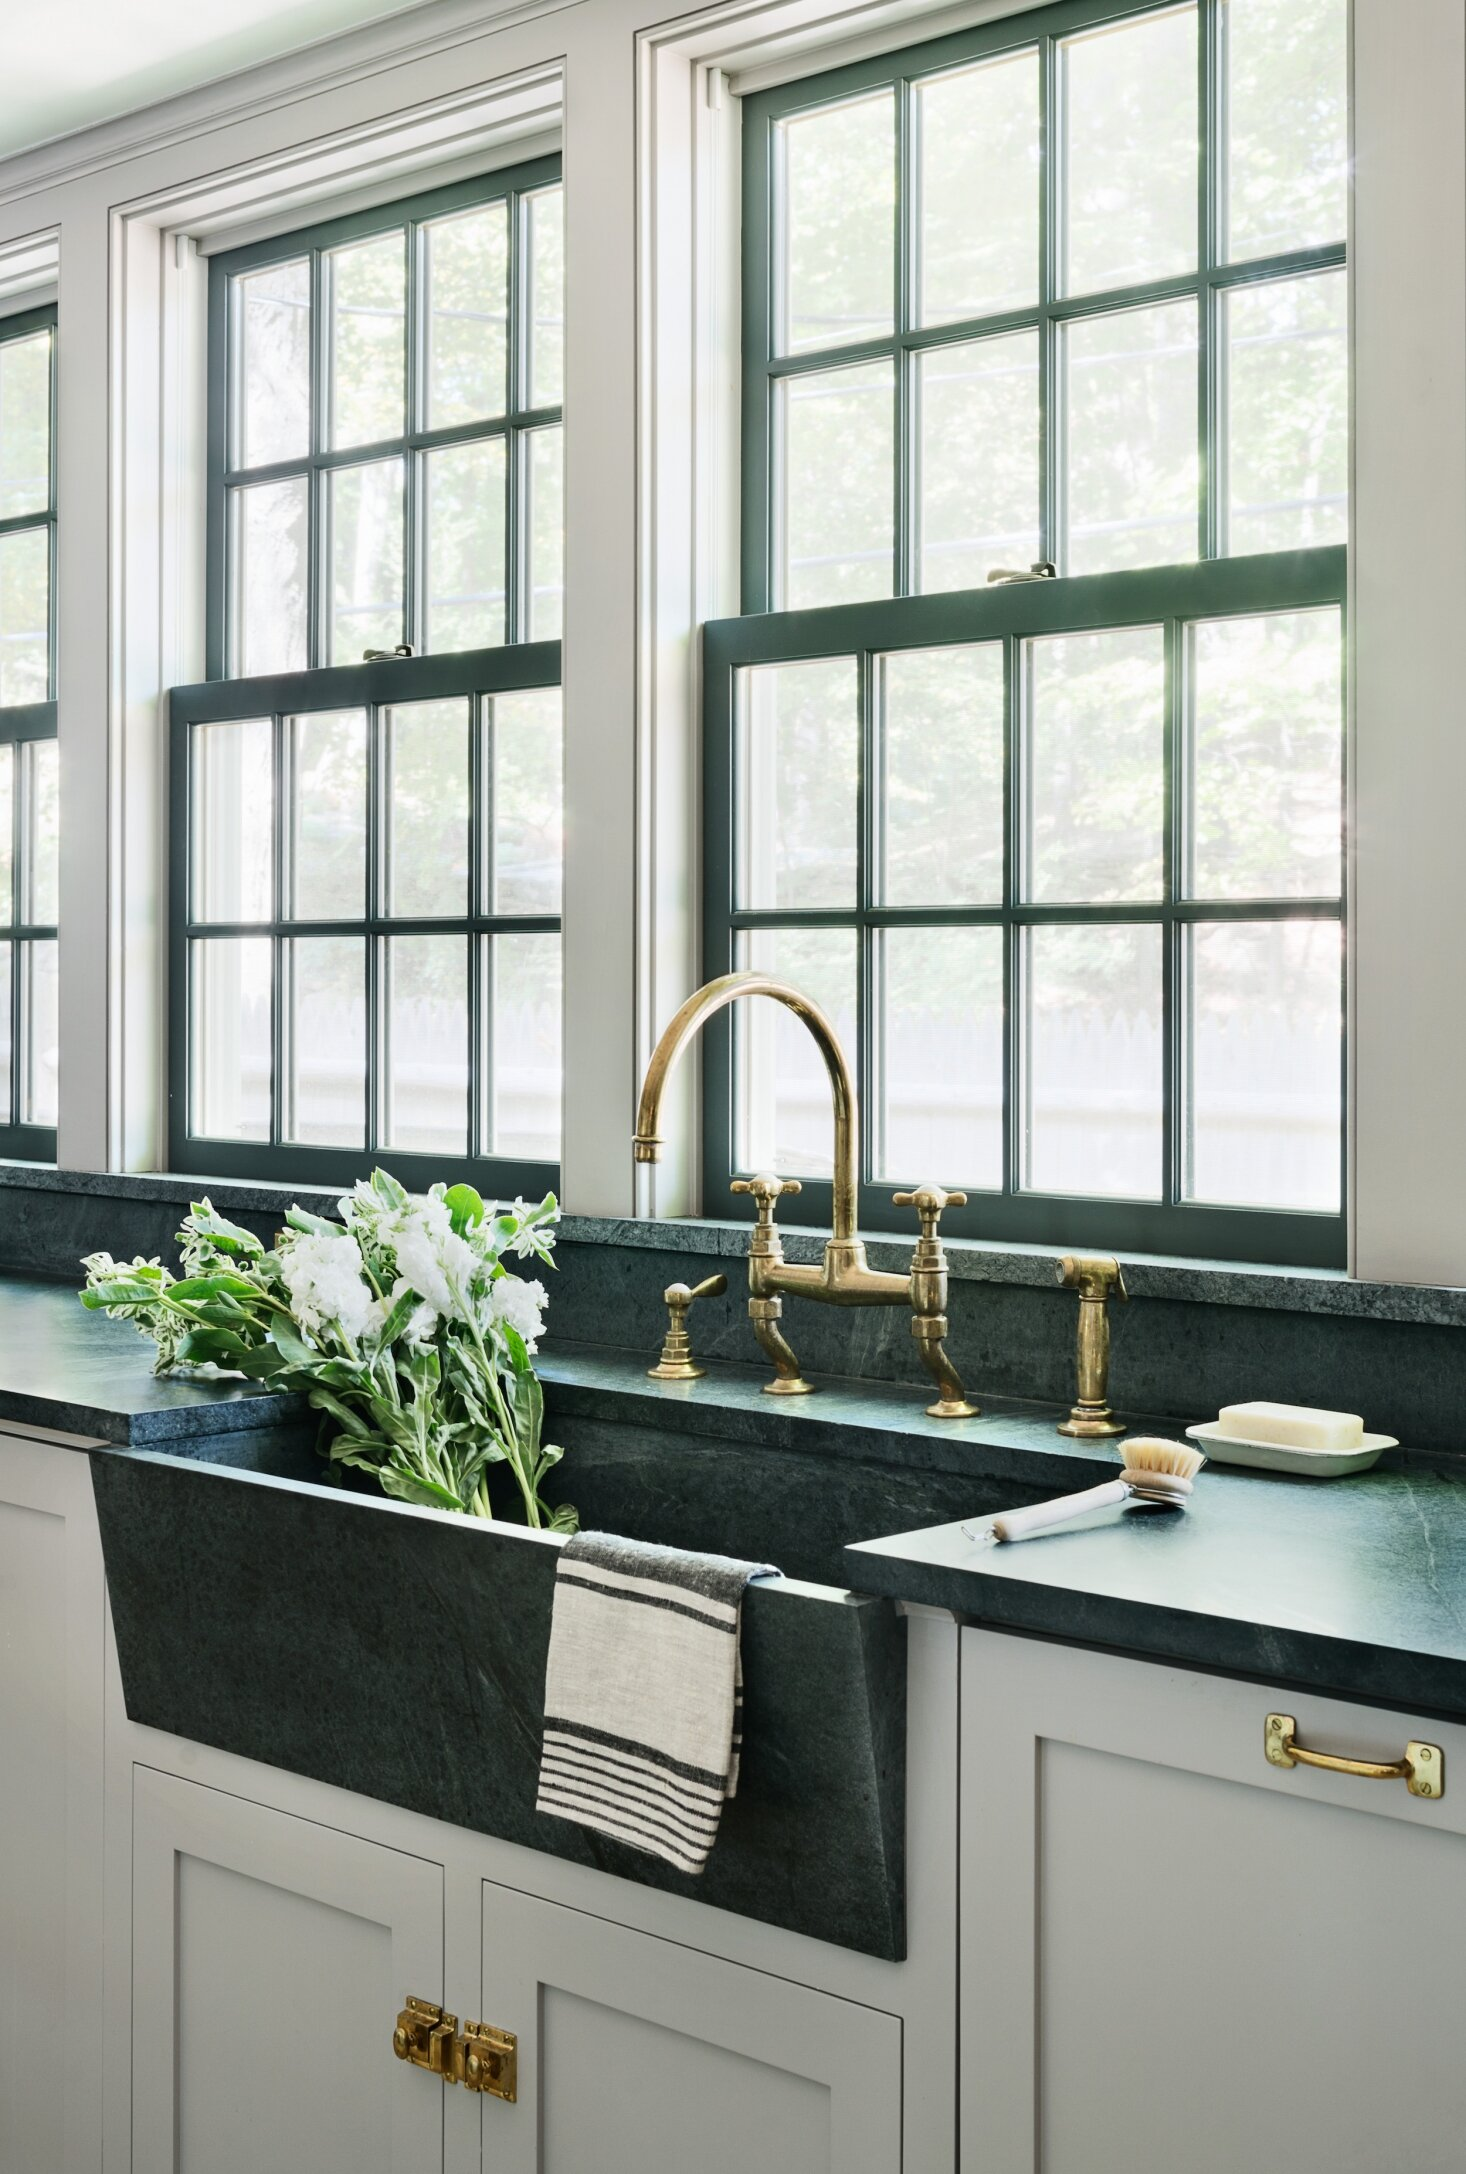 modern-farmhouse-renovation-with-soapstone-counters-integrated-apron-sink-1466x2174.jpg